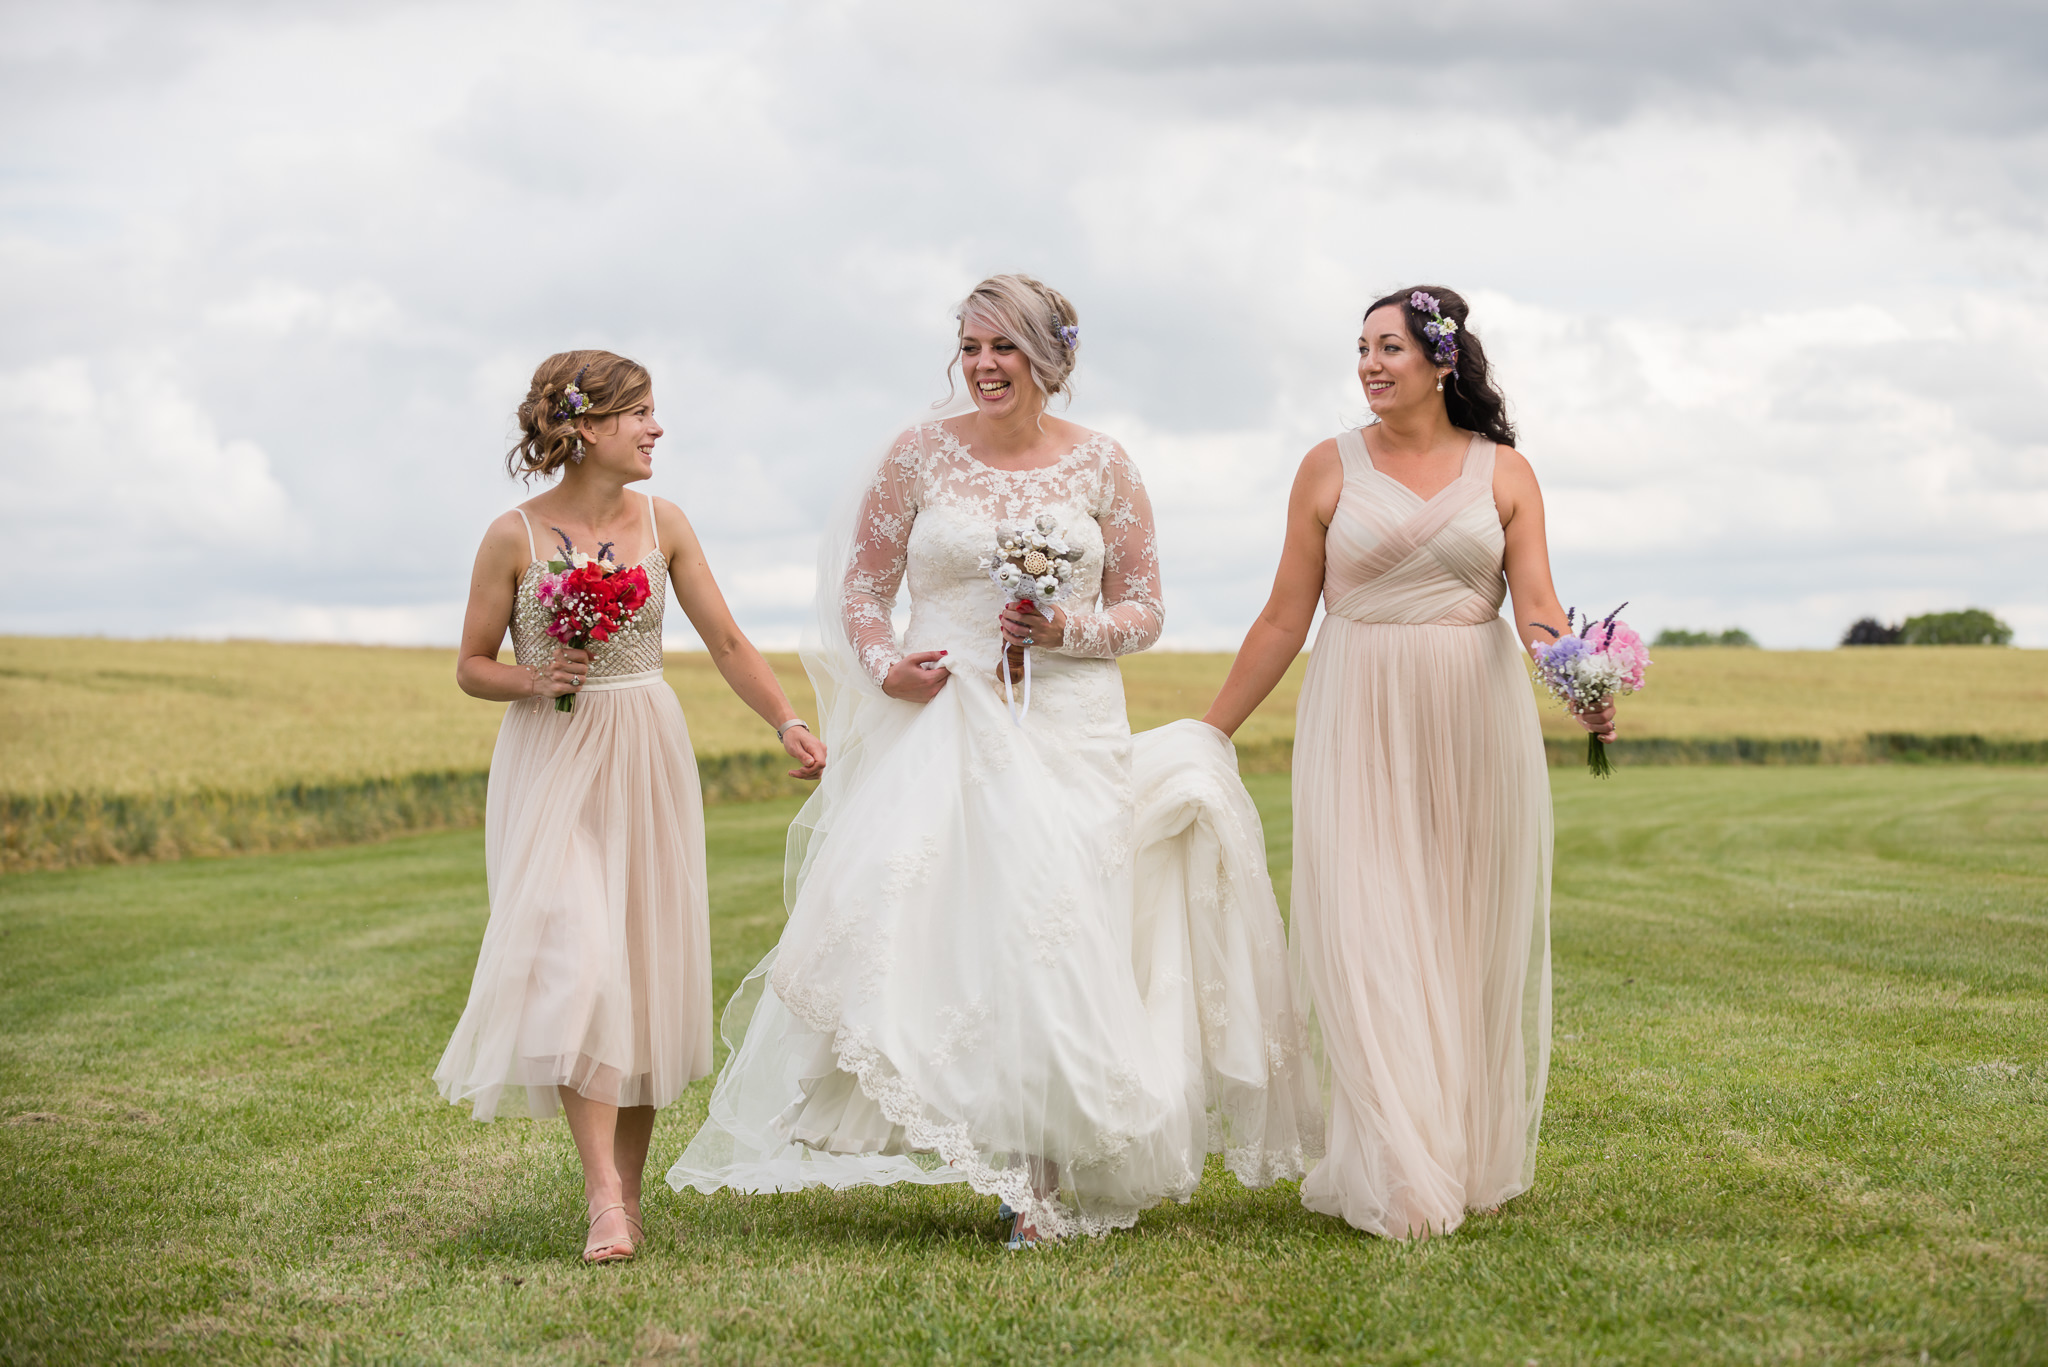 Tipi wedding photography - The bride and two of her bridesmaids